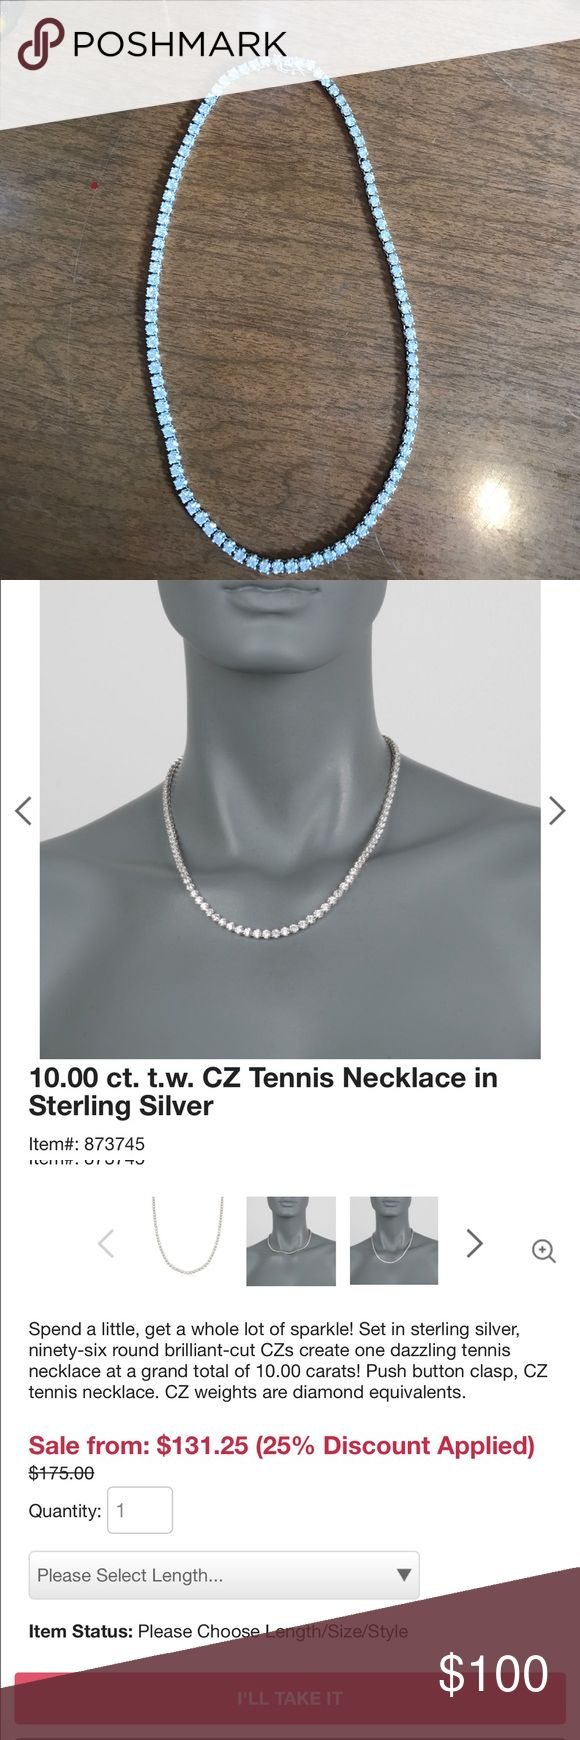 10 carat cz tennis necklace in Sterling Silver Ross Simons jewelry store, 10.00 carats of cz set in 925 Sterling silver, push clap with lock.  Perfect condition.  A little too fancy for me, great for parties of an everyday look 👀. 16 inches long ross simons Jewelry Necklaces